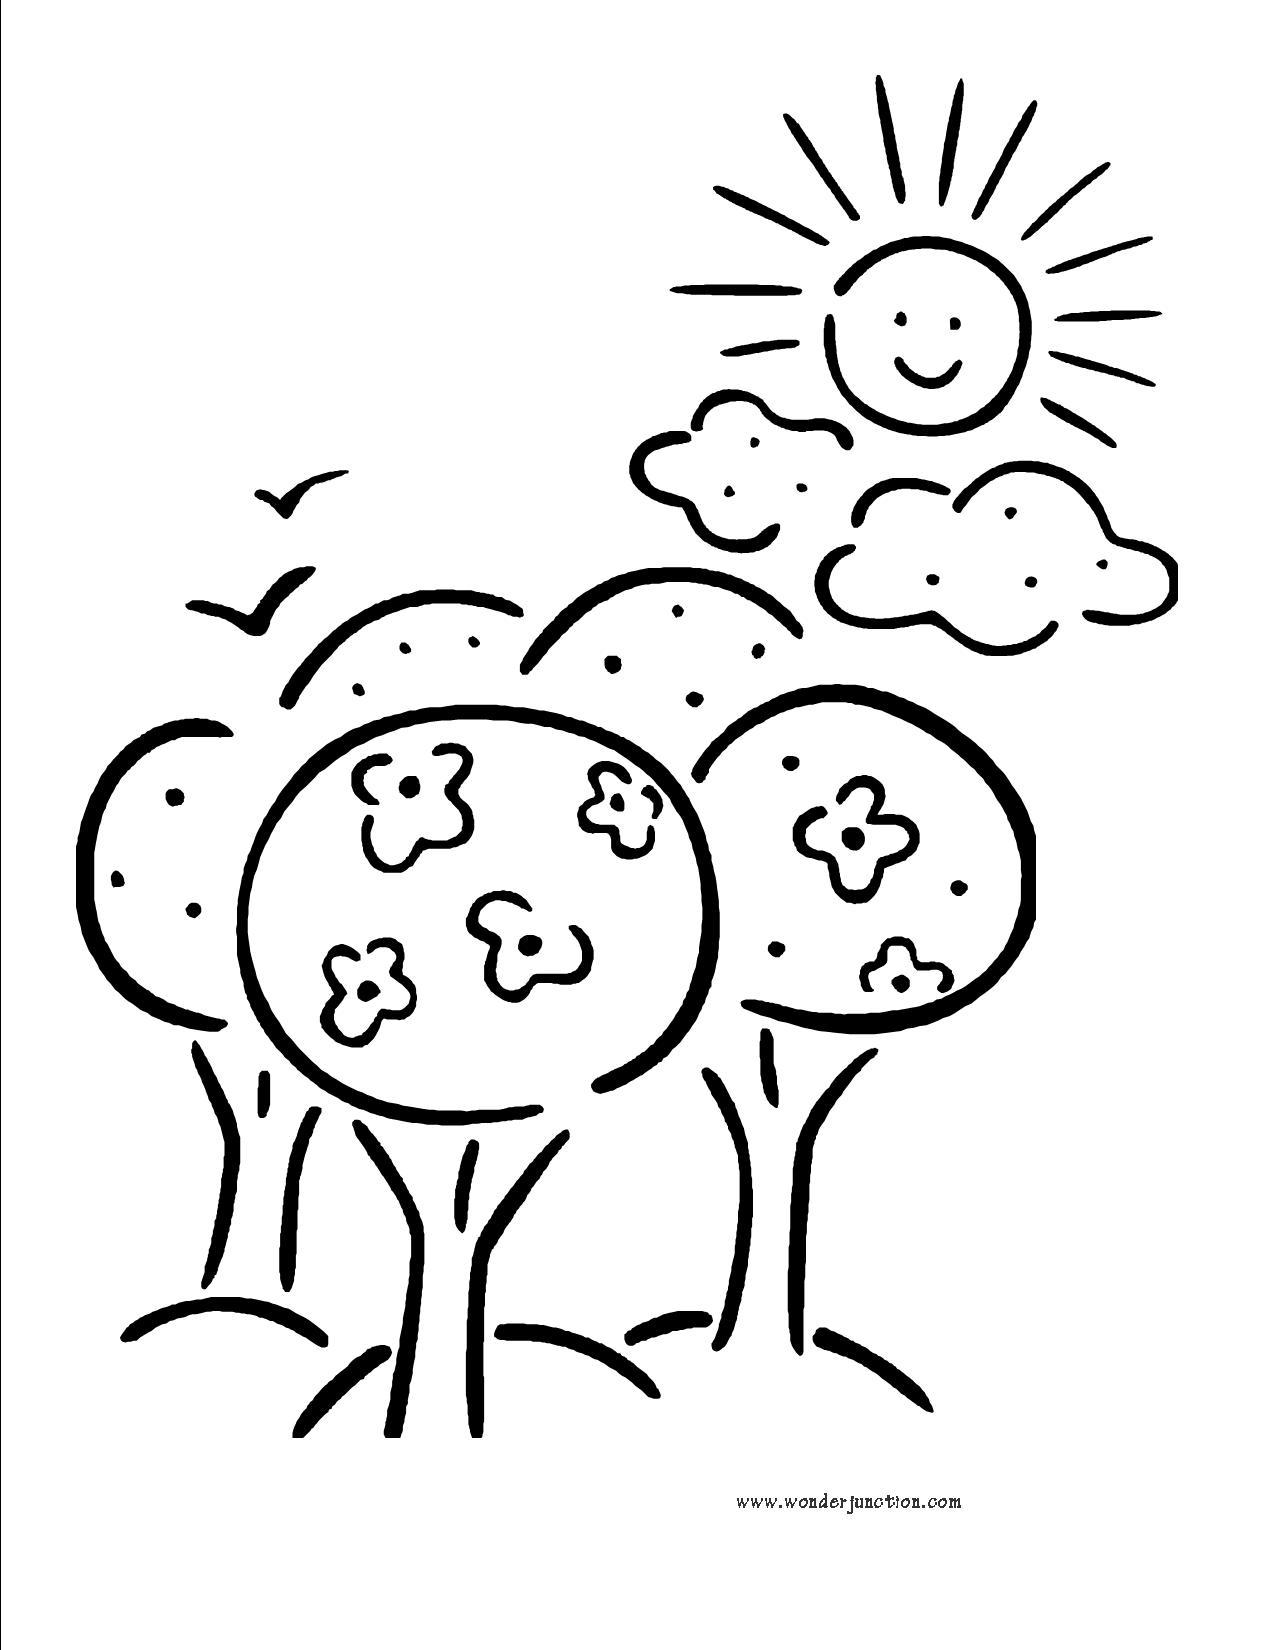 Sunny clipart black and white clip art library Sunny clipart black and white 4 » Clipart Portal clip art library